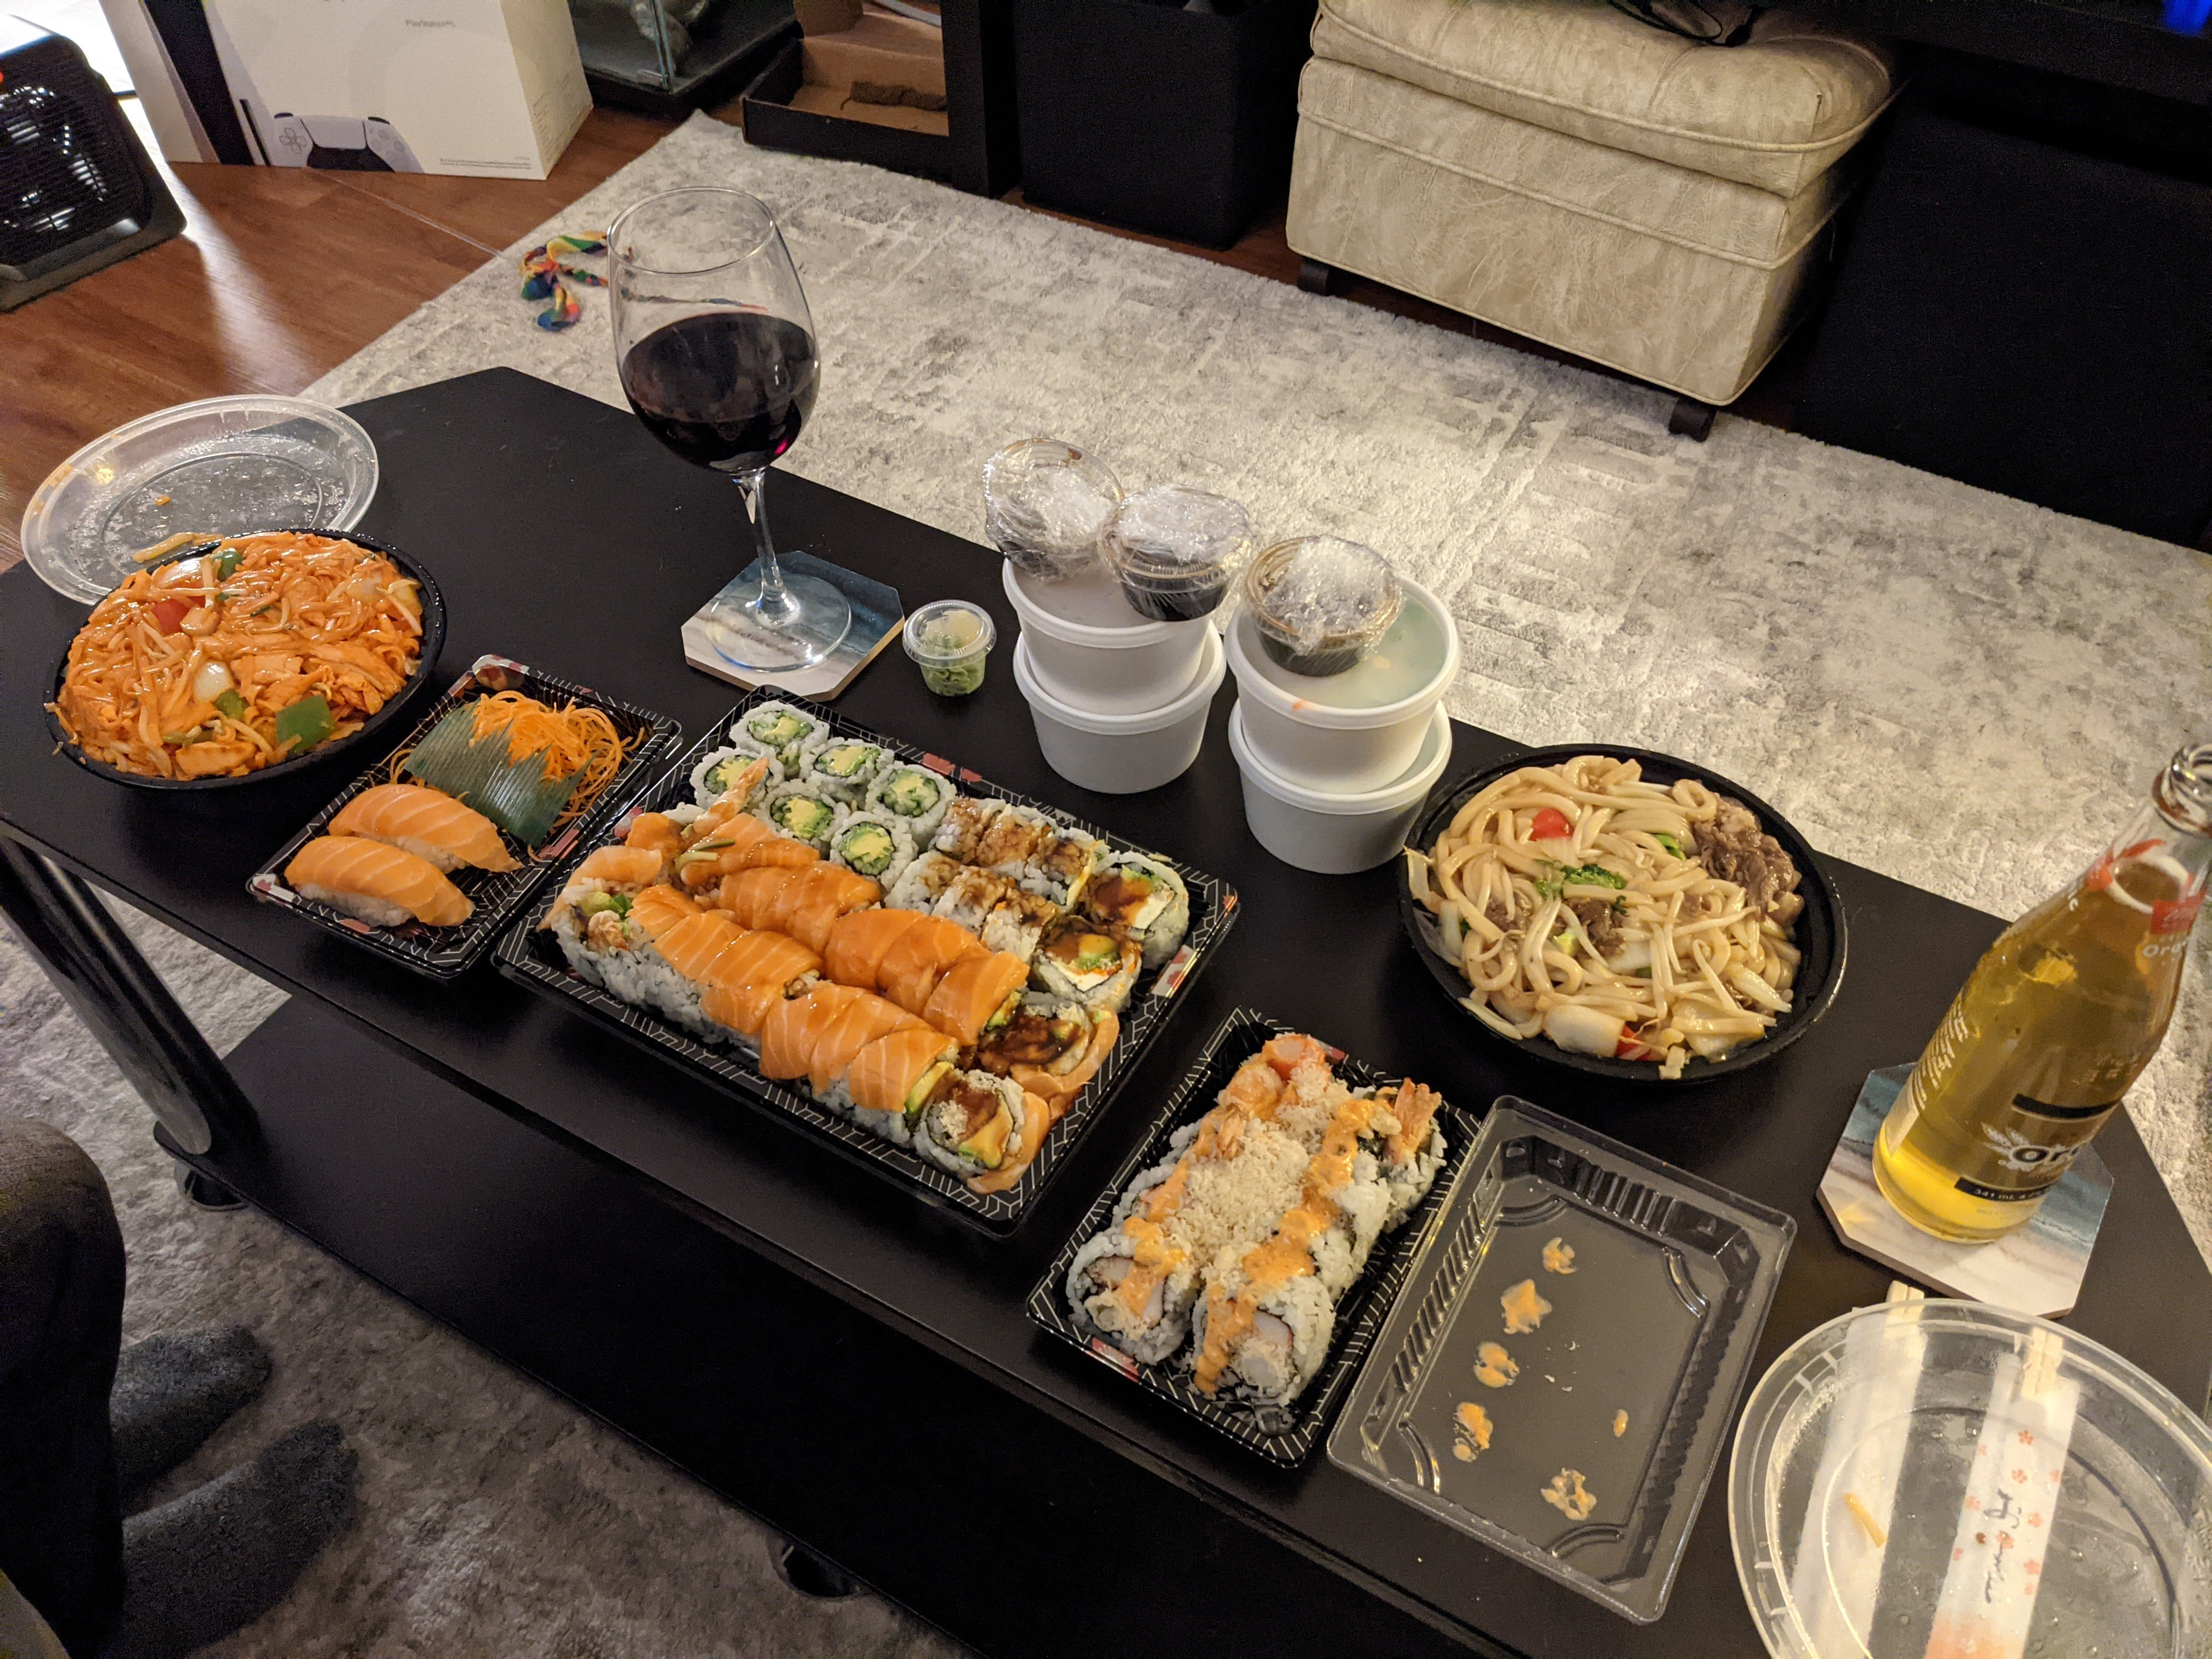 A variety of sushi dishes layed out on a black coffee table. It's lots of food with a beer and wine glass as well.